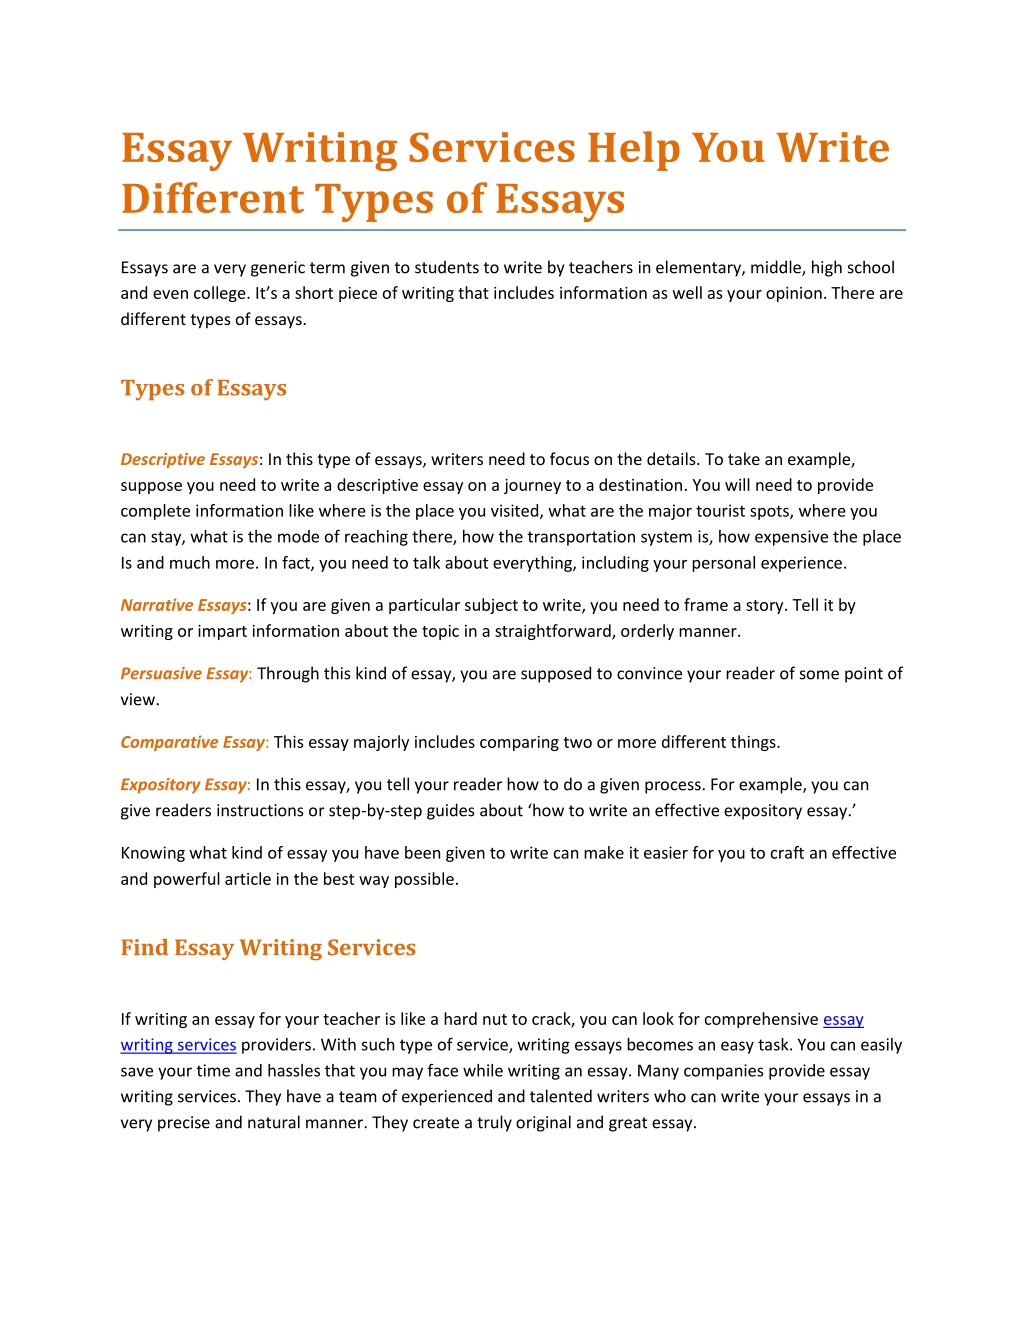 Narrative Essay Example For High School Essay Writing Services Help You Write Different N Science And Technology Essays also High School Entrance Essay Examples Ppt  Essay Writing Services Help You Write Different Types Of  English Essay Topics